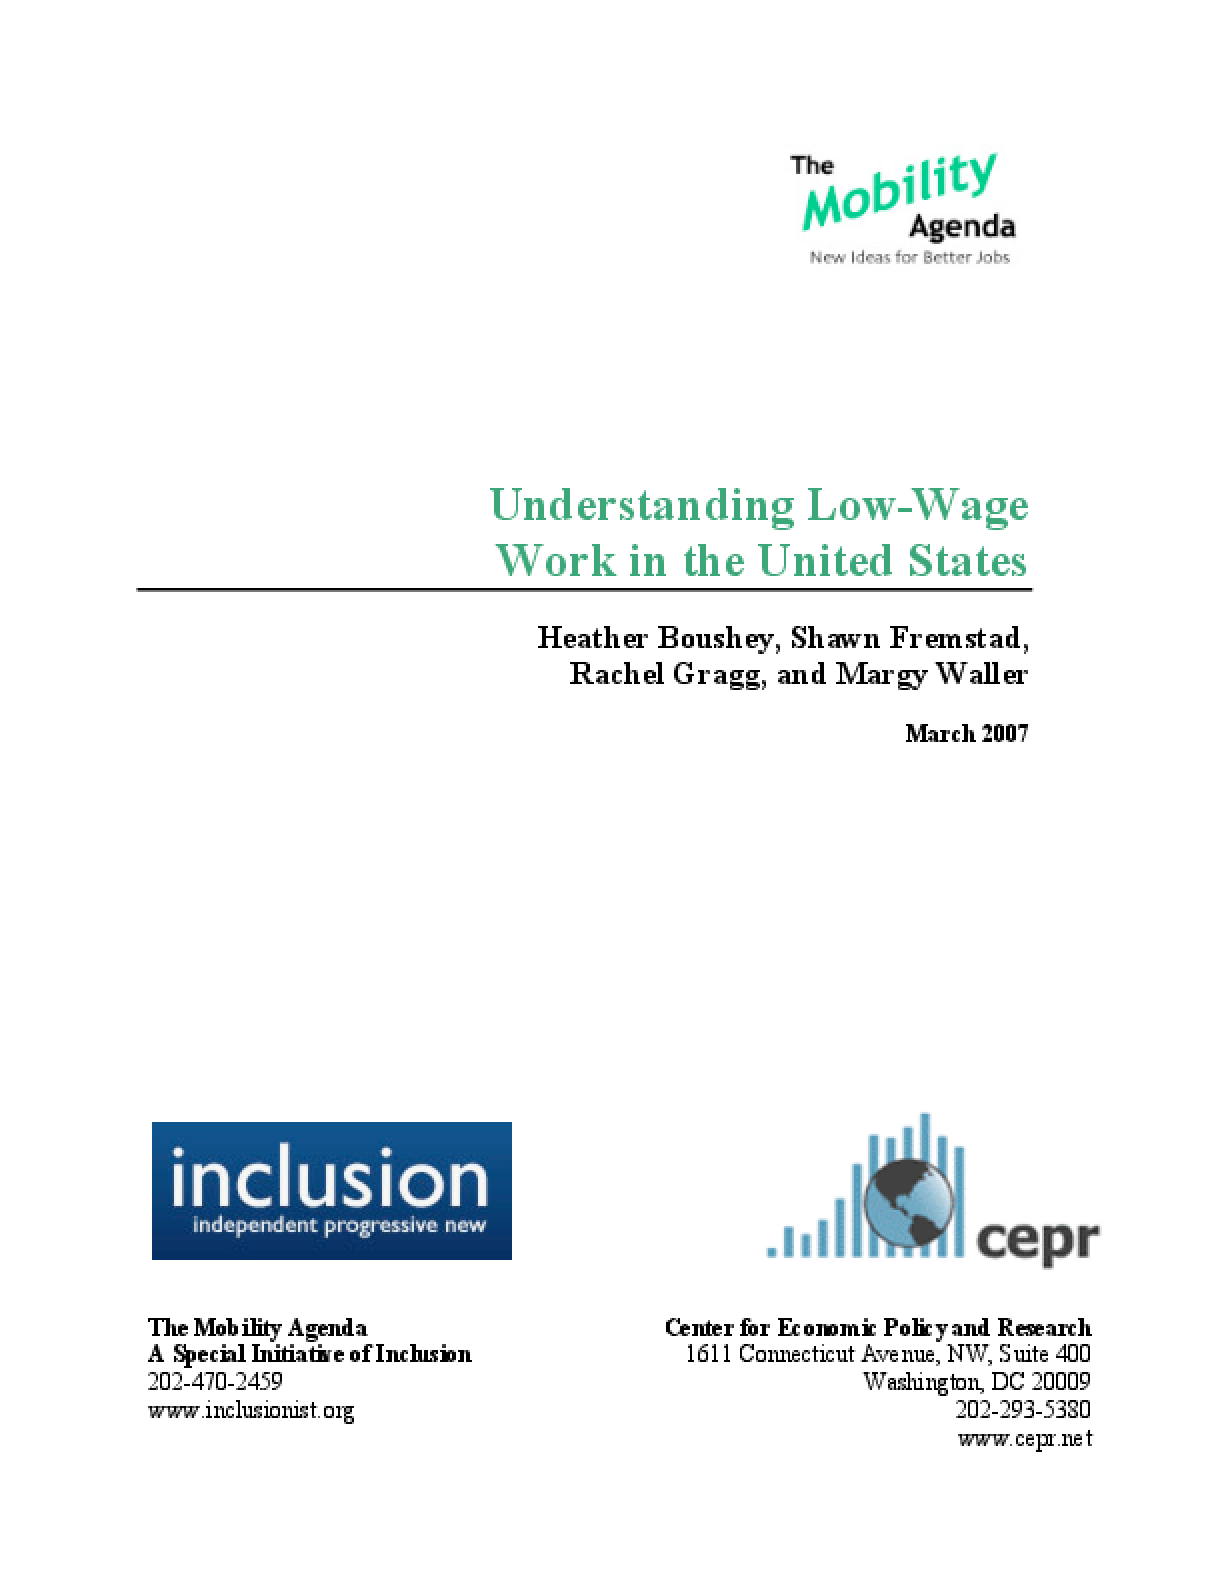 Understanding Low-Wage Work in the United States